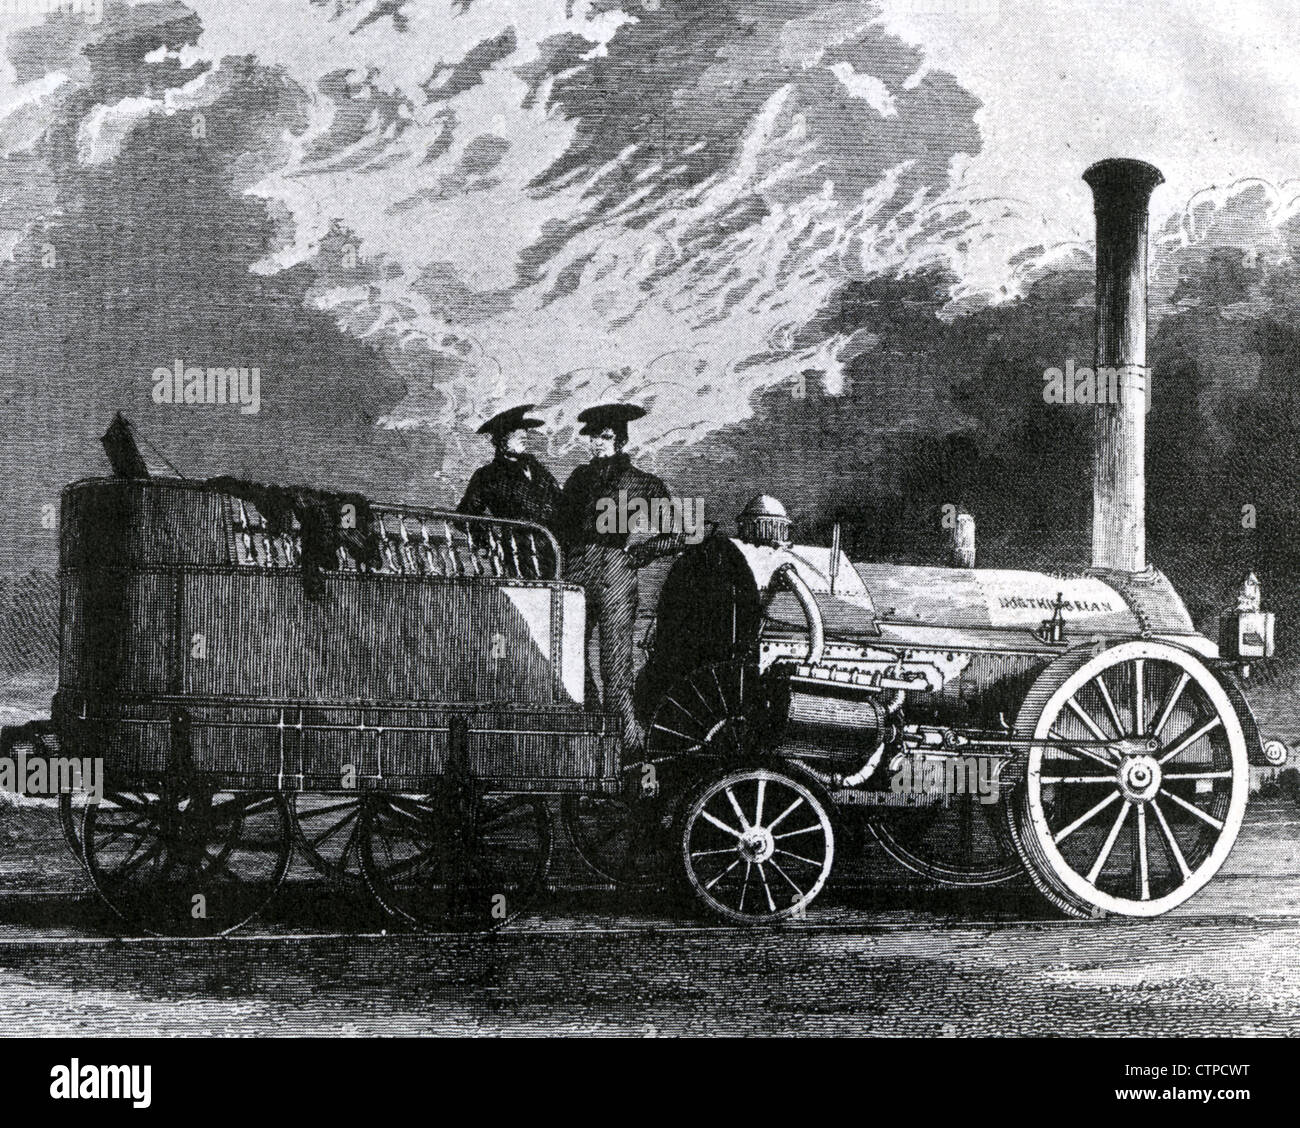 ROBERT STEPHENSON (1803-1859) English railway engineer designed  the Northumbrian in 1830 - Stock Image